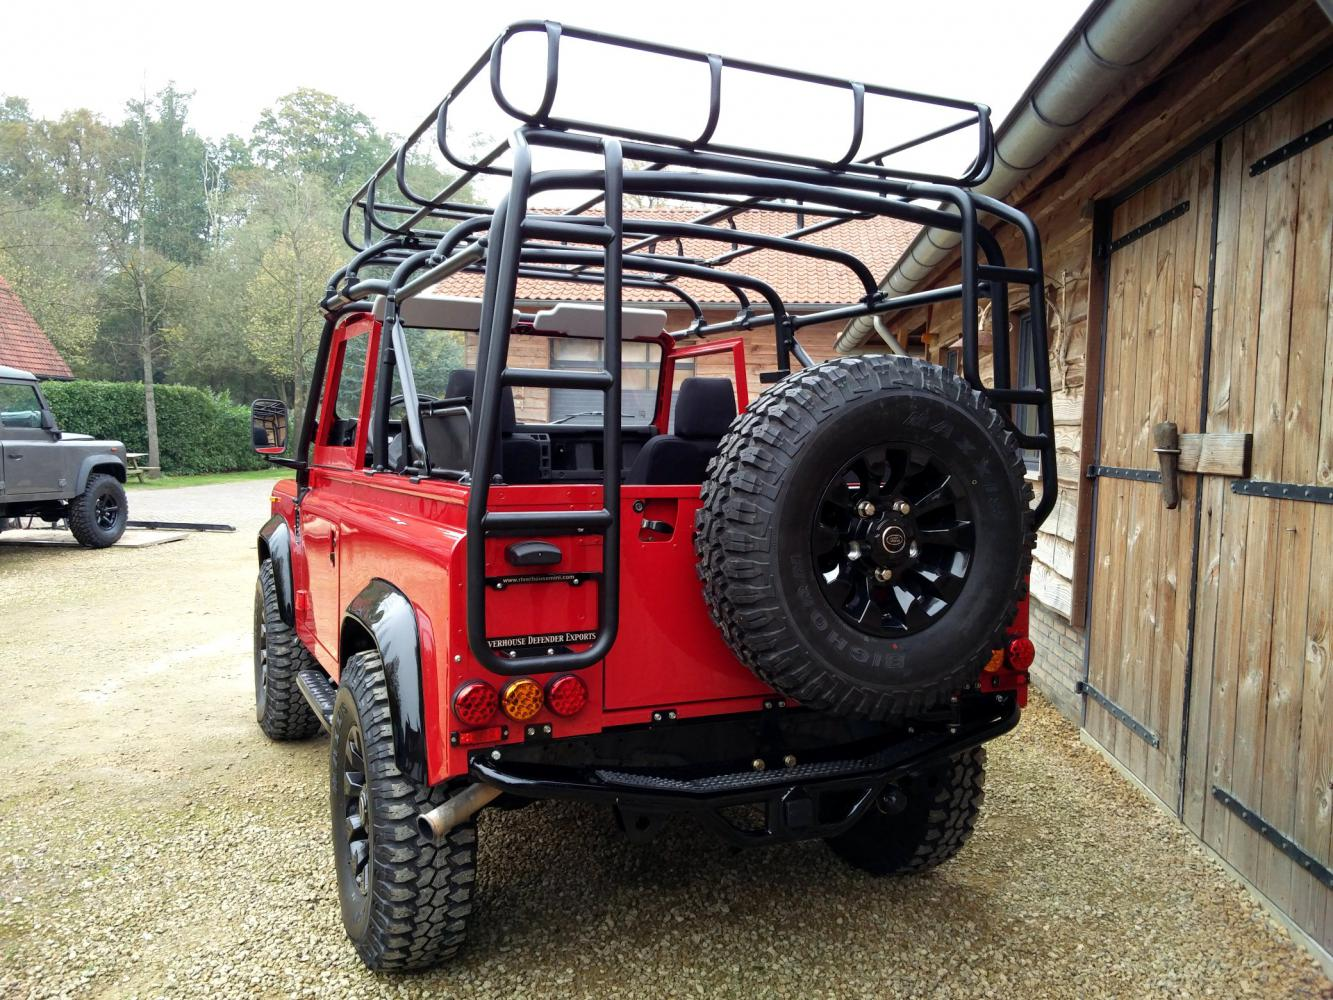 Click image for larger version  Name:1992 LR LHD Defender 90 Red 200 Tdi A day 15 rear.jpg Views:55 Size:260.0 KB ID:323745